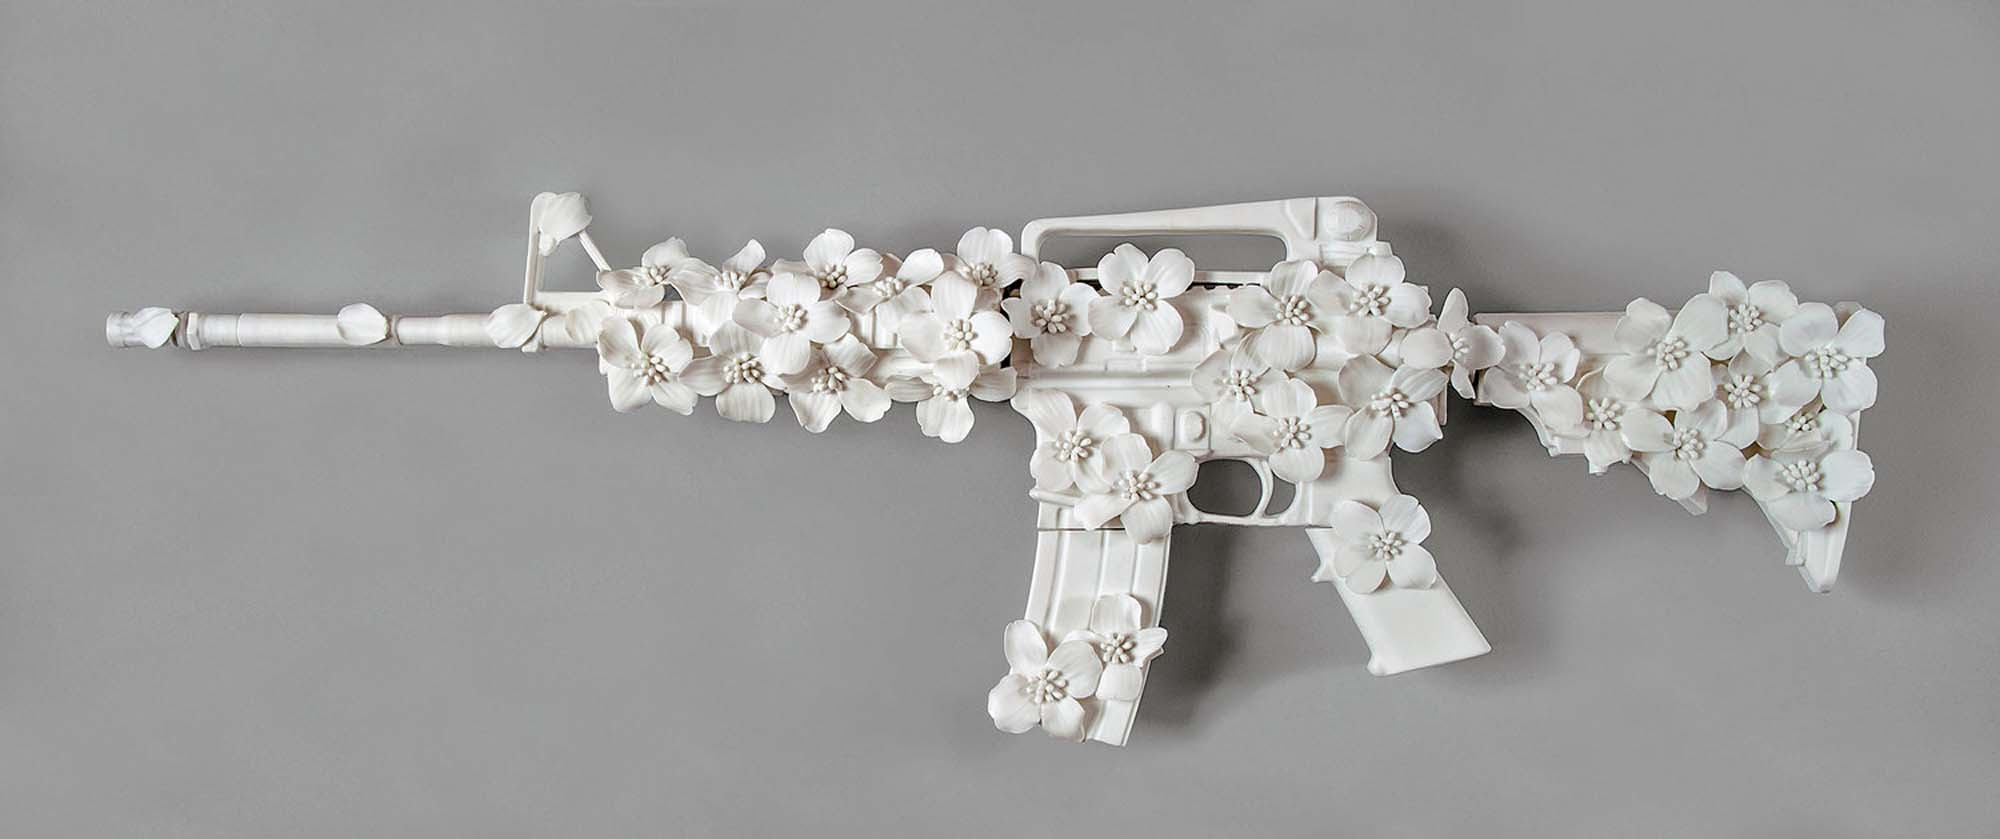 porcelain sculpture of an ar-15 rifle covered in porcelain flowers